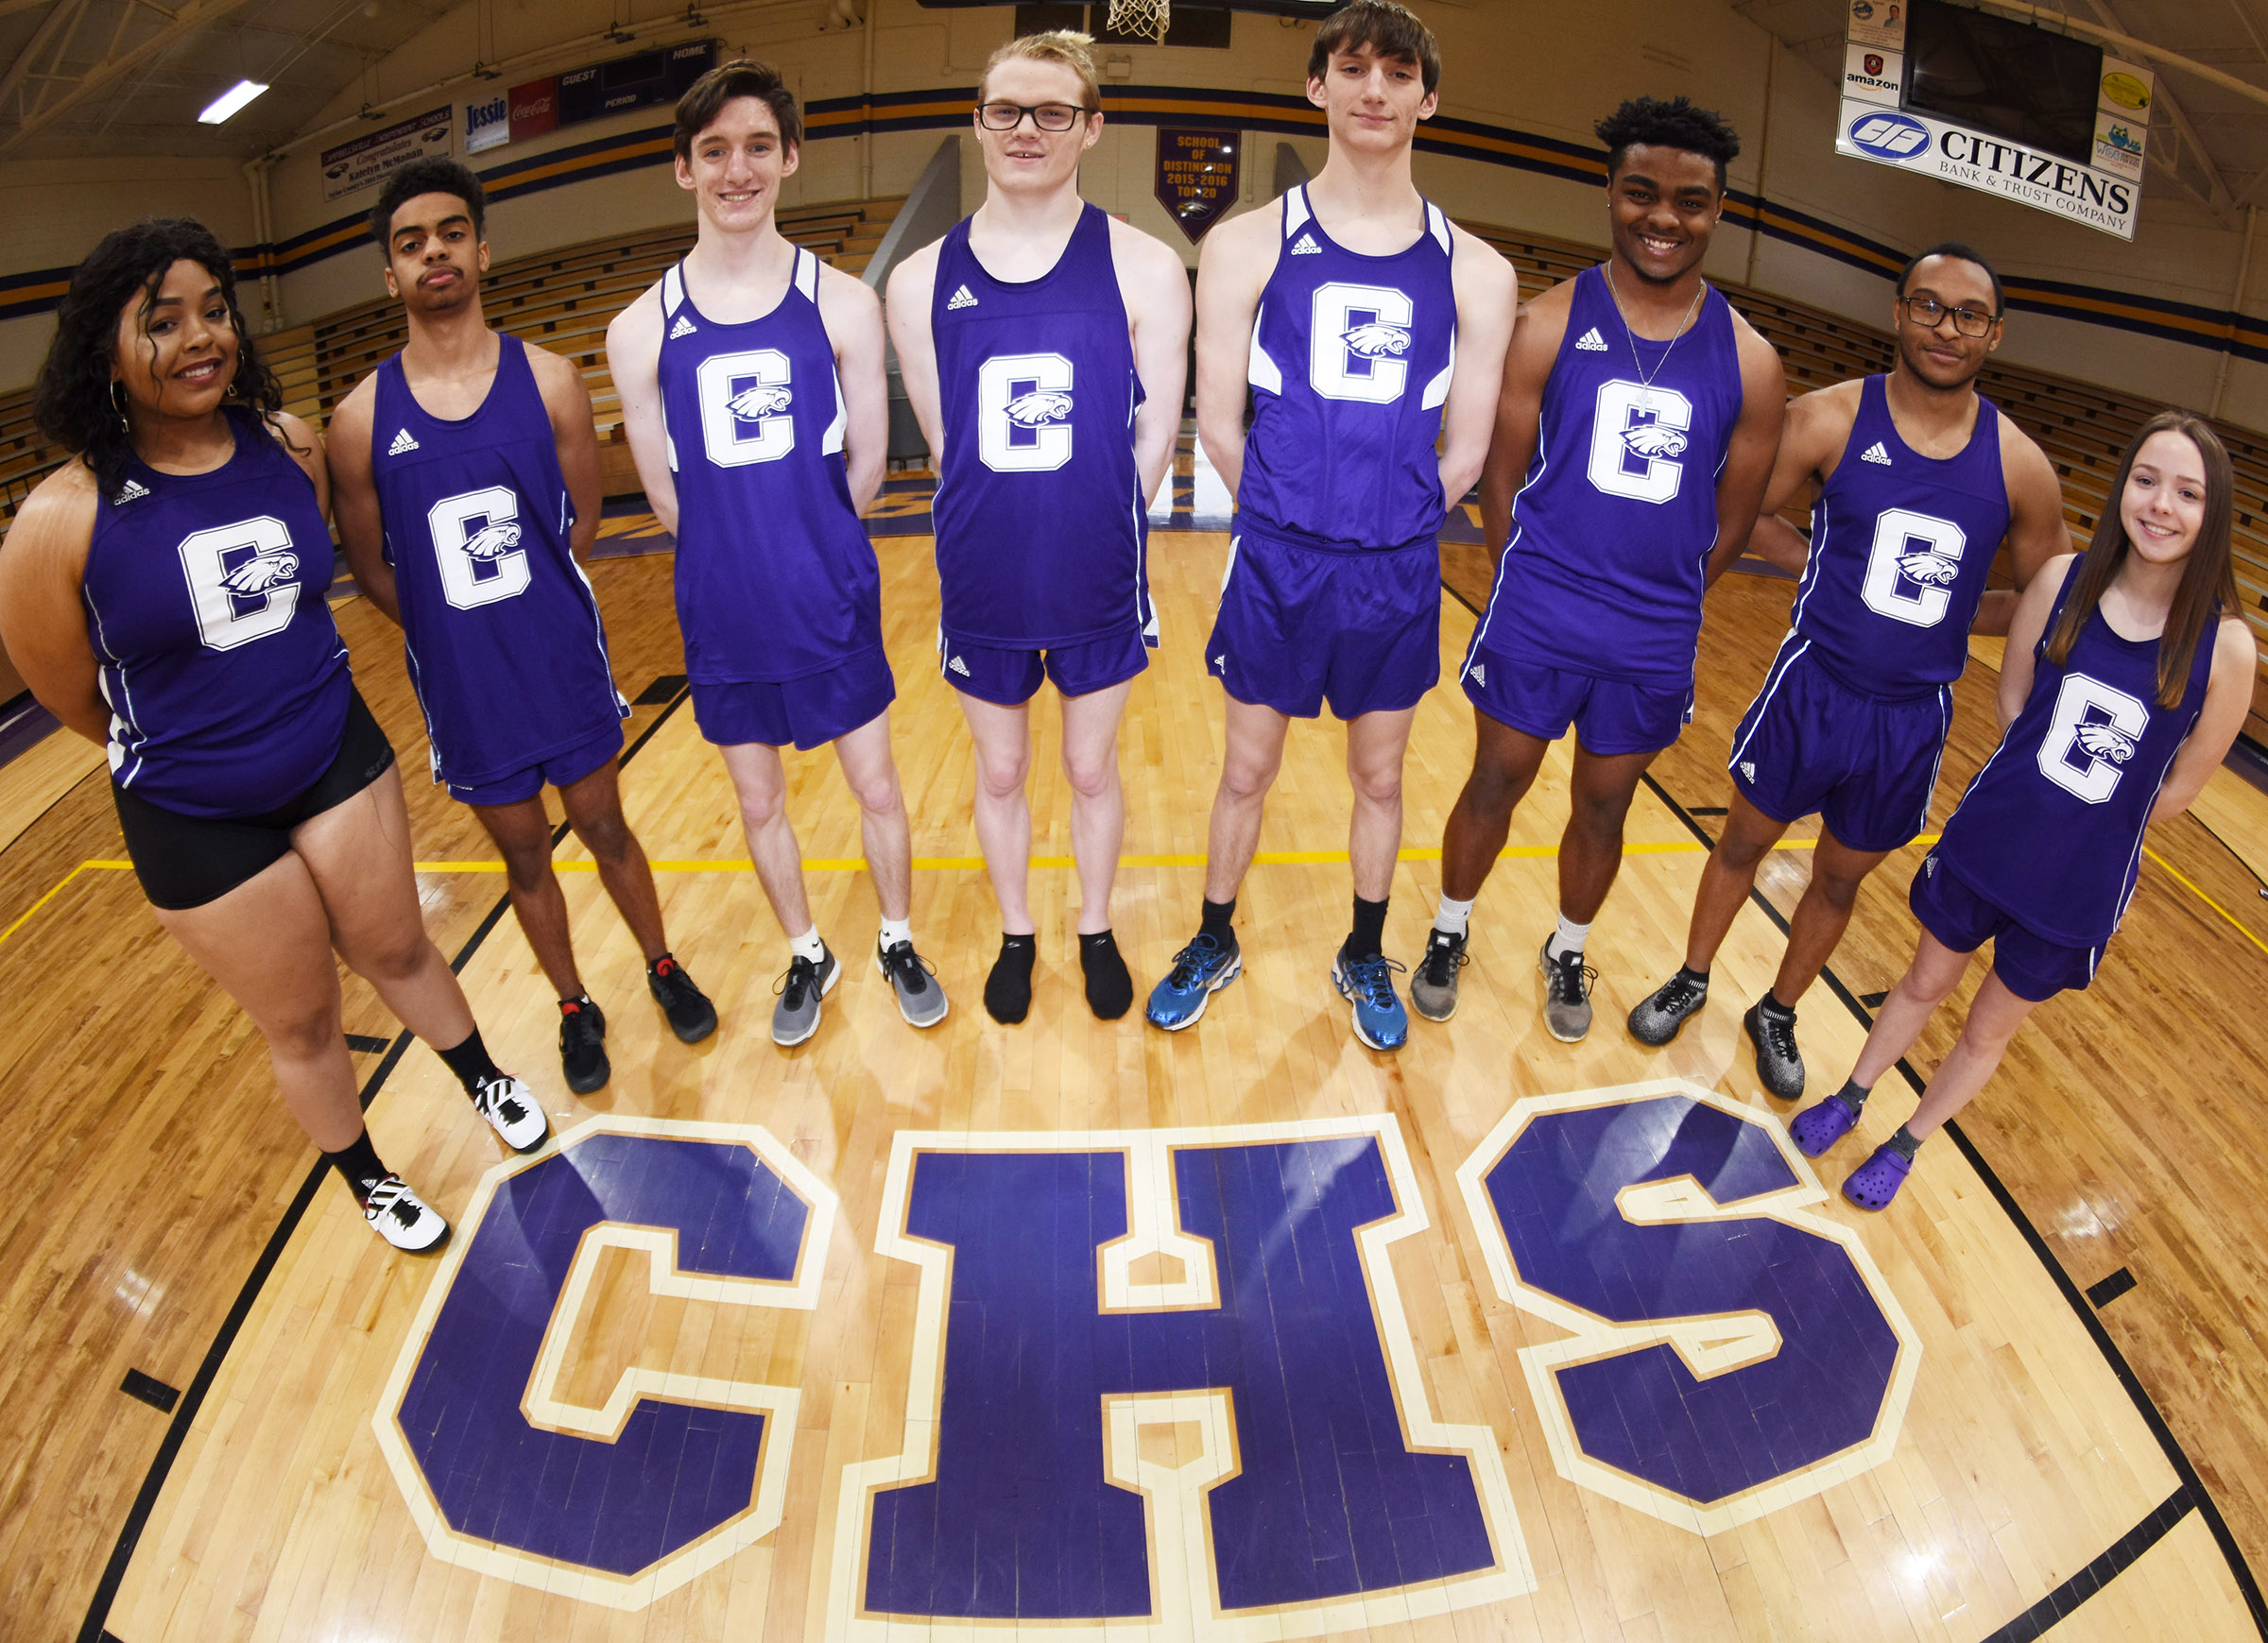 CHS senior track team members are, from left, Natalie Caldwell, Davon Cecil, Ian McAninch, Joe Pipes, Evan McAninch, Charlie Pettigrew, Daesean Vancleave and Christa Riggs. Absent from the photo is senior Tristan Johnson.